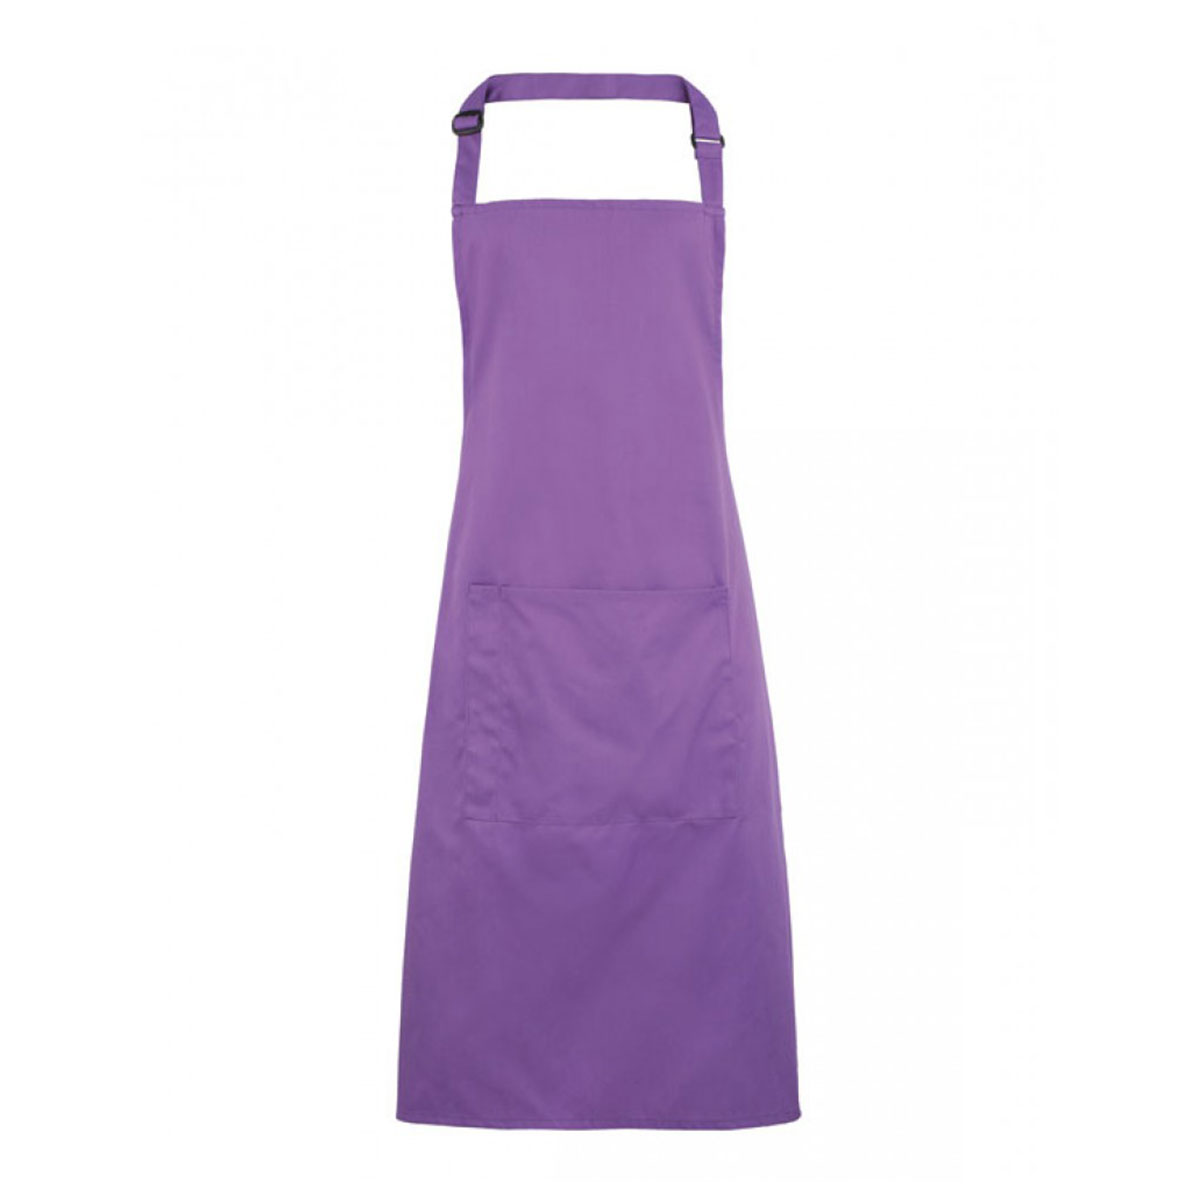 Colours Bib Apron with Pocket - pr154-rich-violet